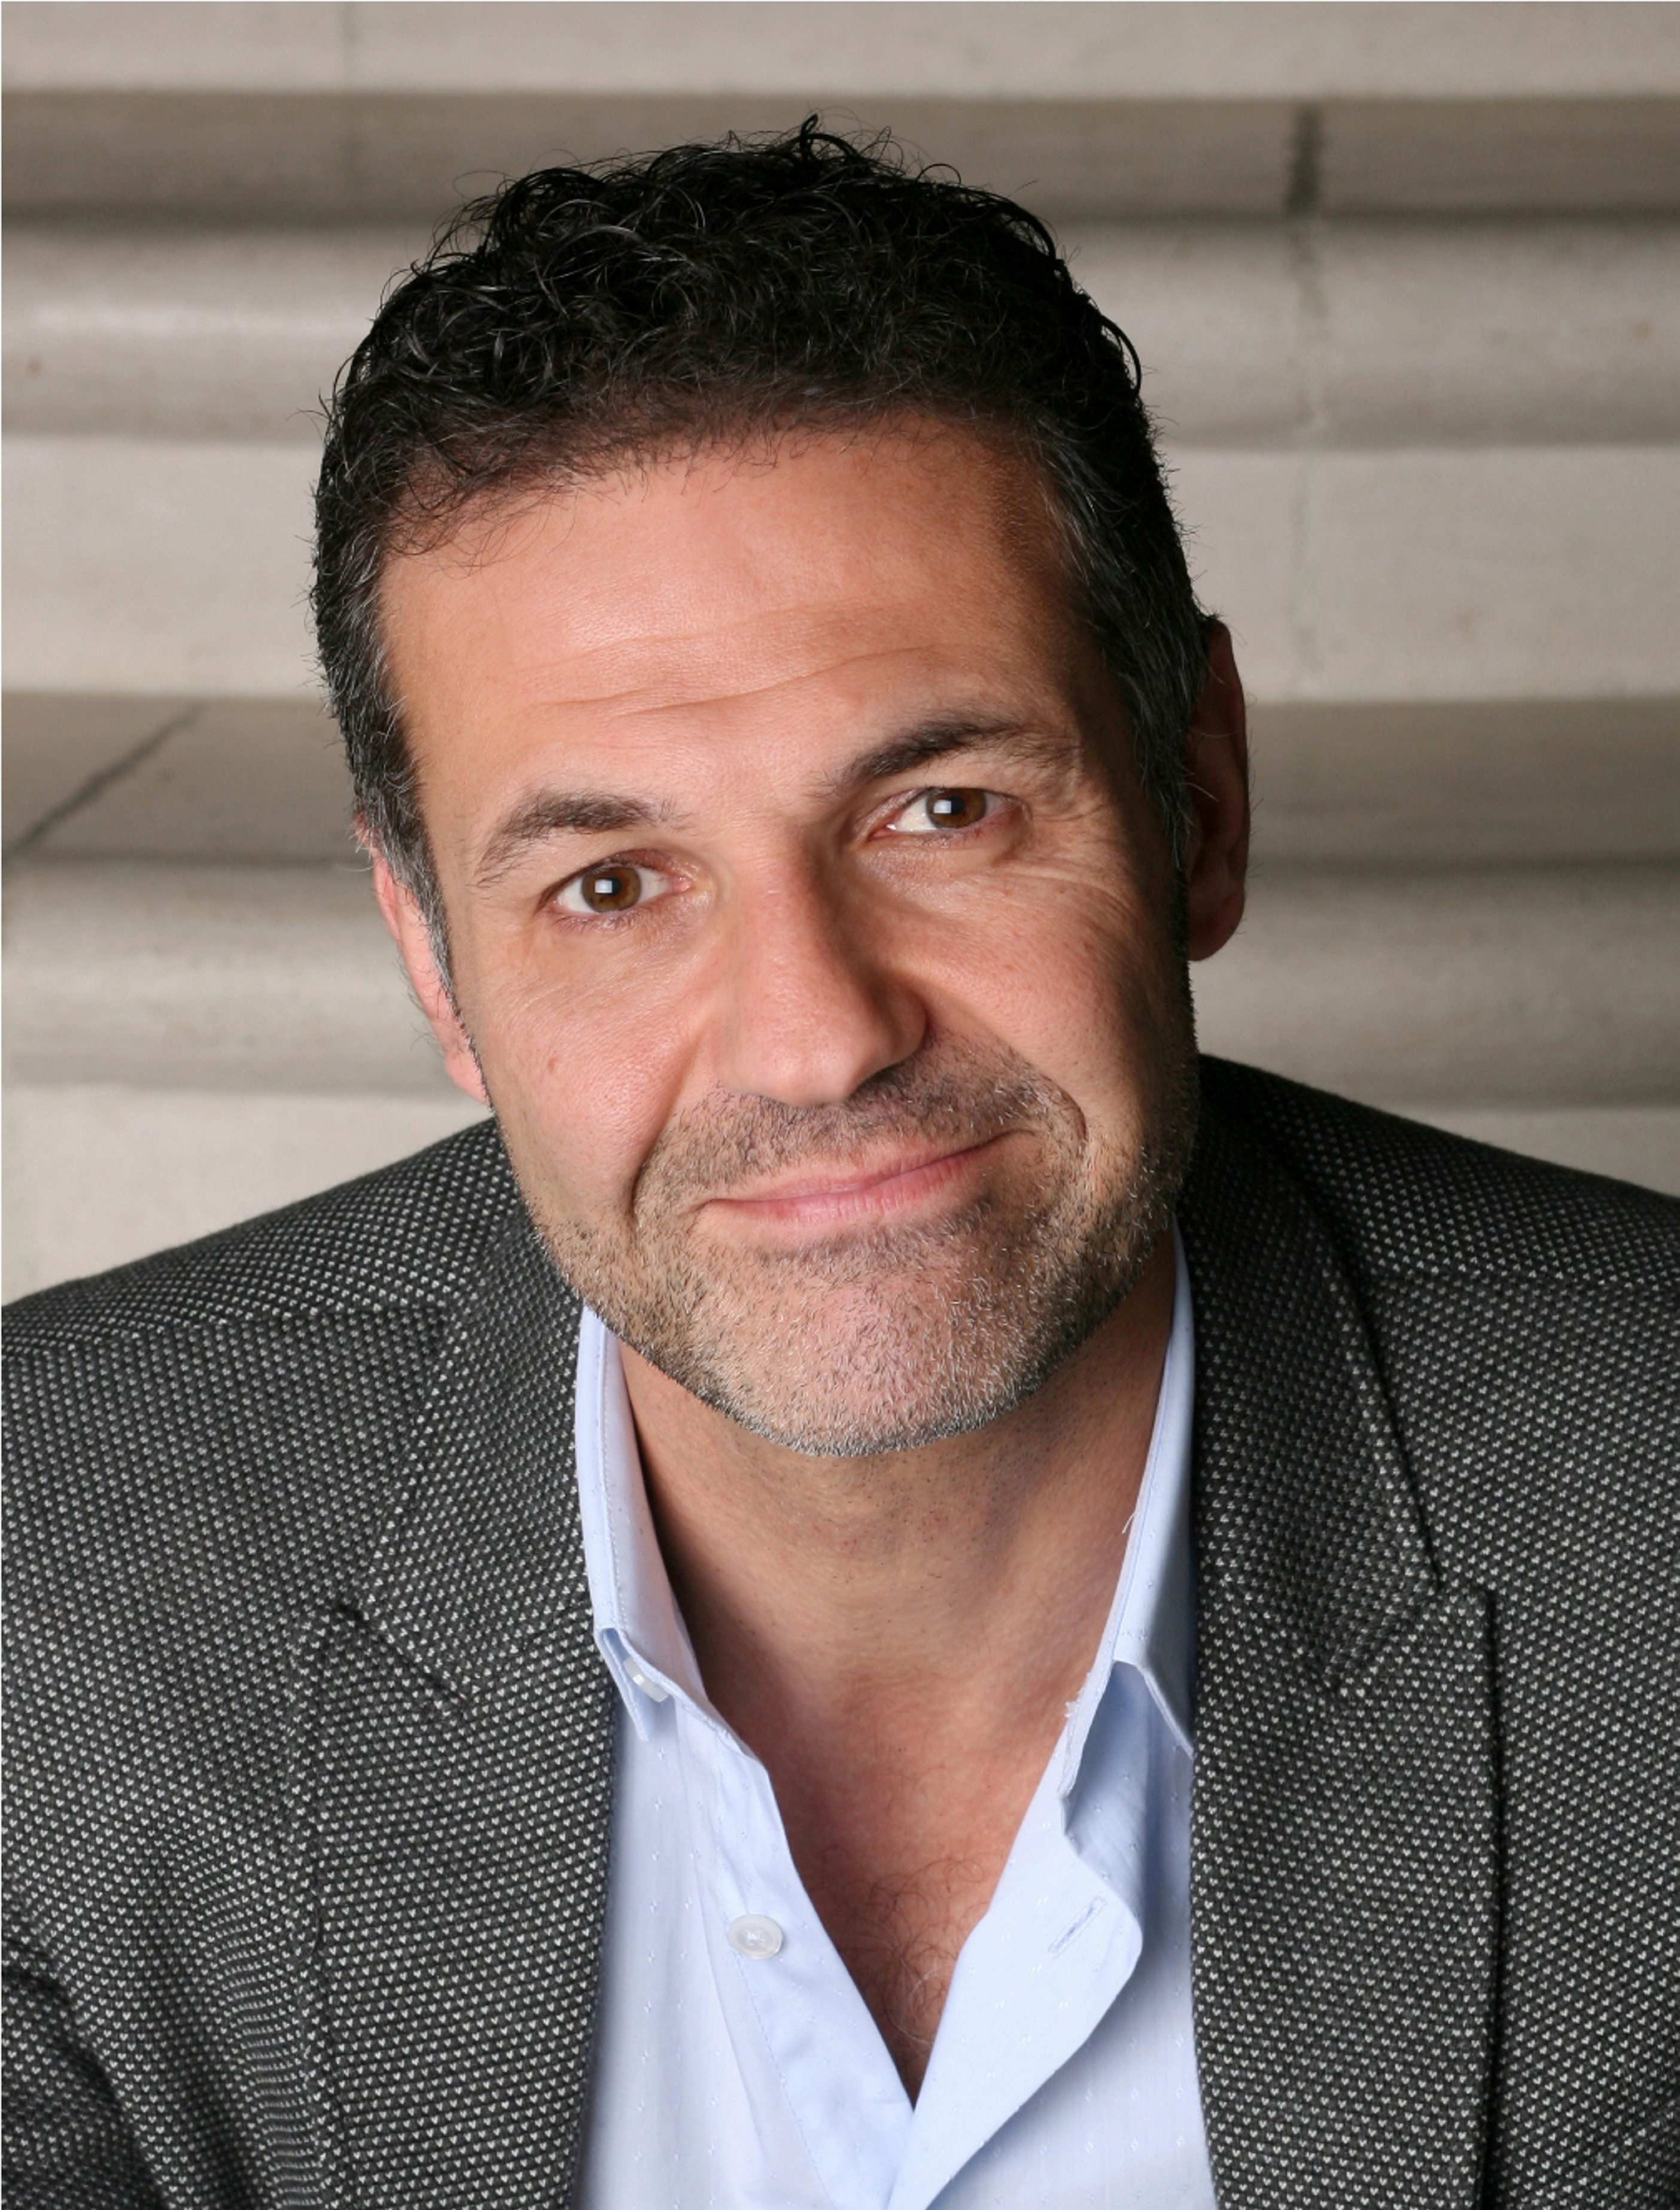 Khaled Hosseini's third novel of Afghanistan looks at the way family members wound, betray, honor and sacrifice for each other.